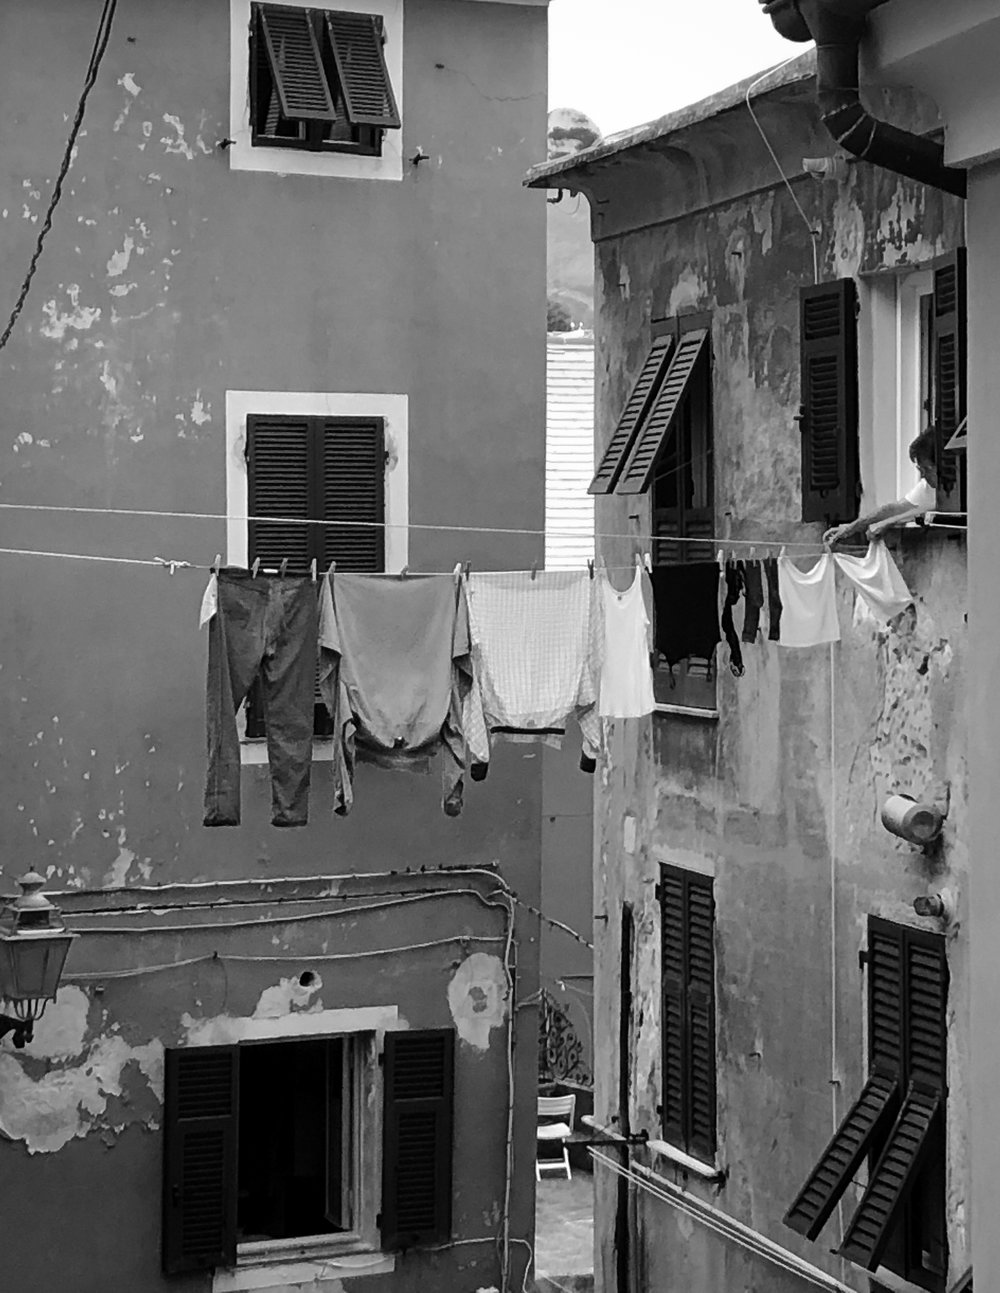 The lady hangs clothes for drying stretching the rope from one building to another near the beach. Narrow streets to navigate. Classic scene.   #genova   #historic   #italy   #europe  #photography   #monochrome  #blackandwhite   #iphone   #canon   #adobe  #fashion   #vogue   #streets   #building  #architecture